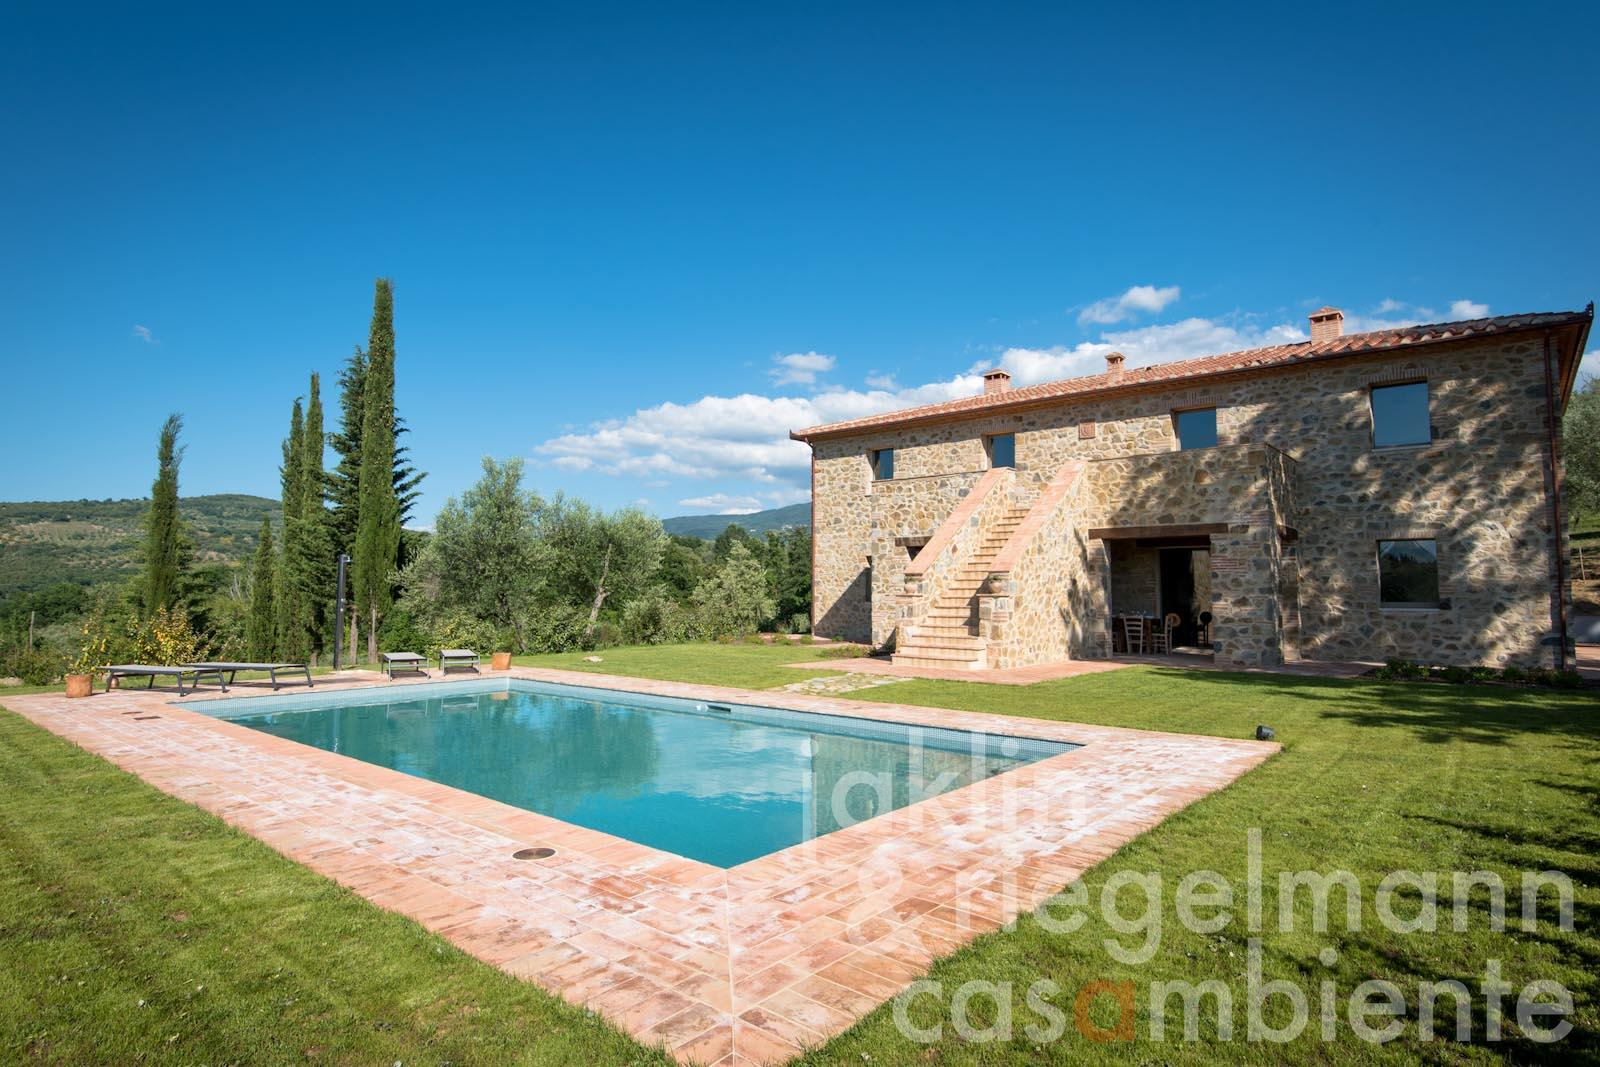 The newly constructed country house for sale in the Maremma with pool and olive grove in panoramic setting